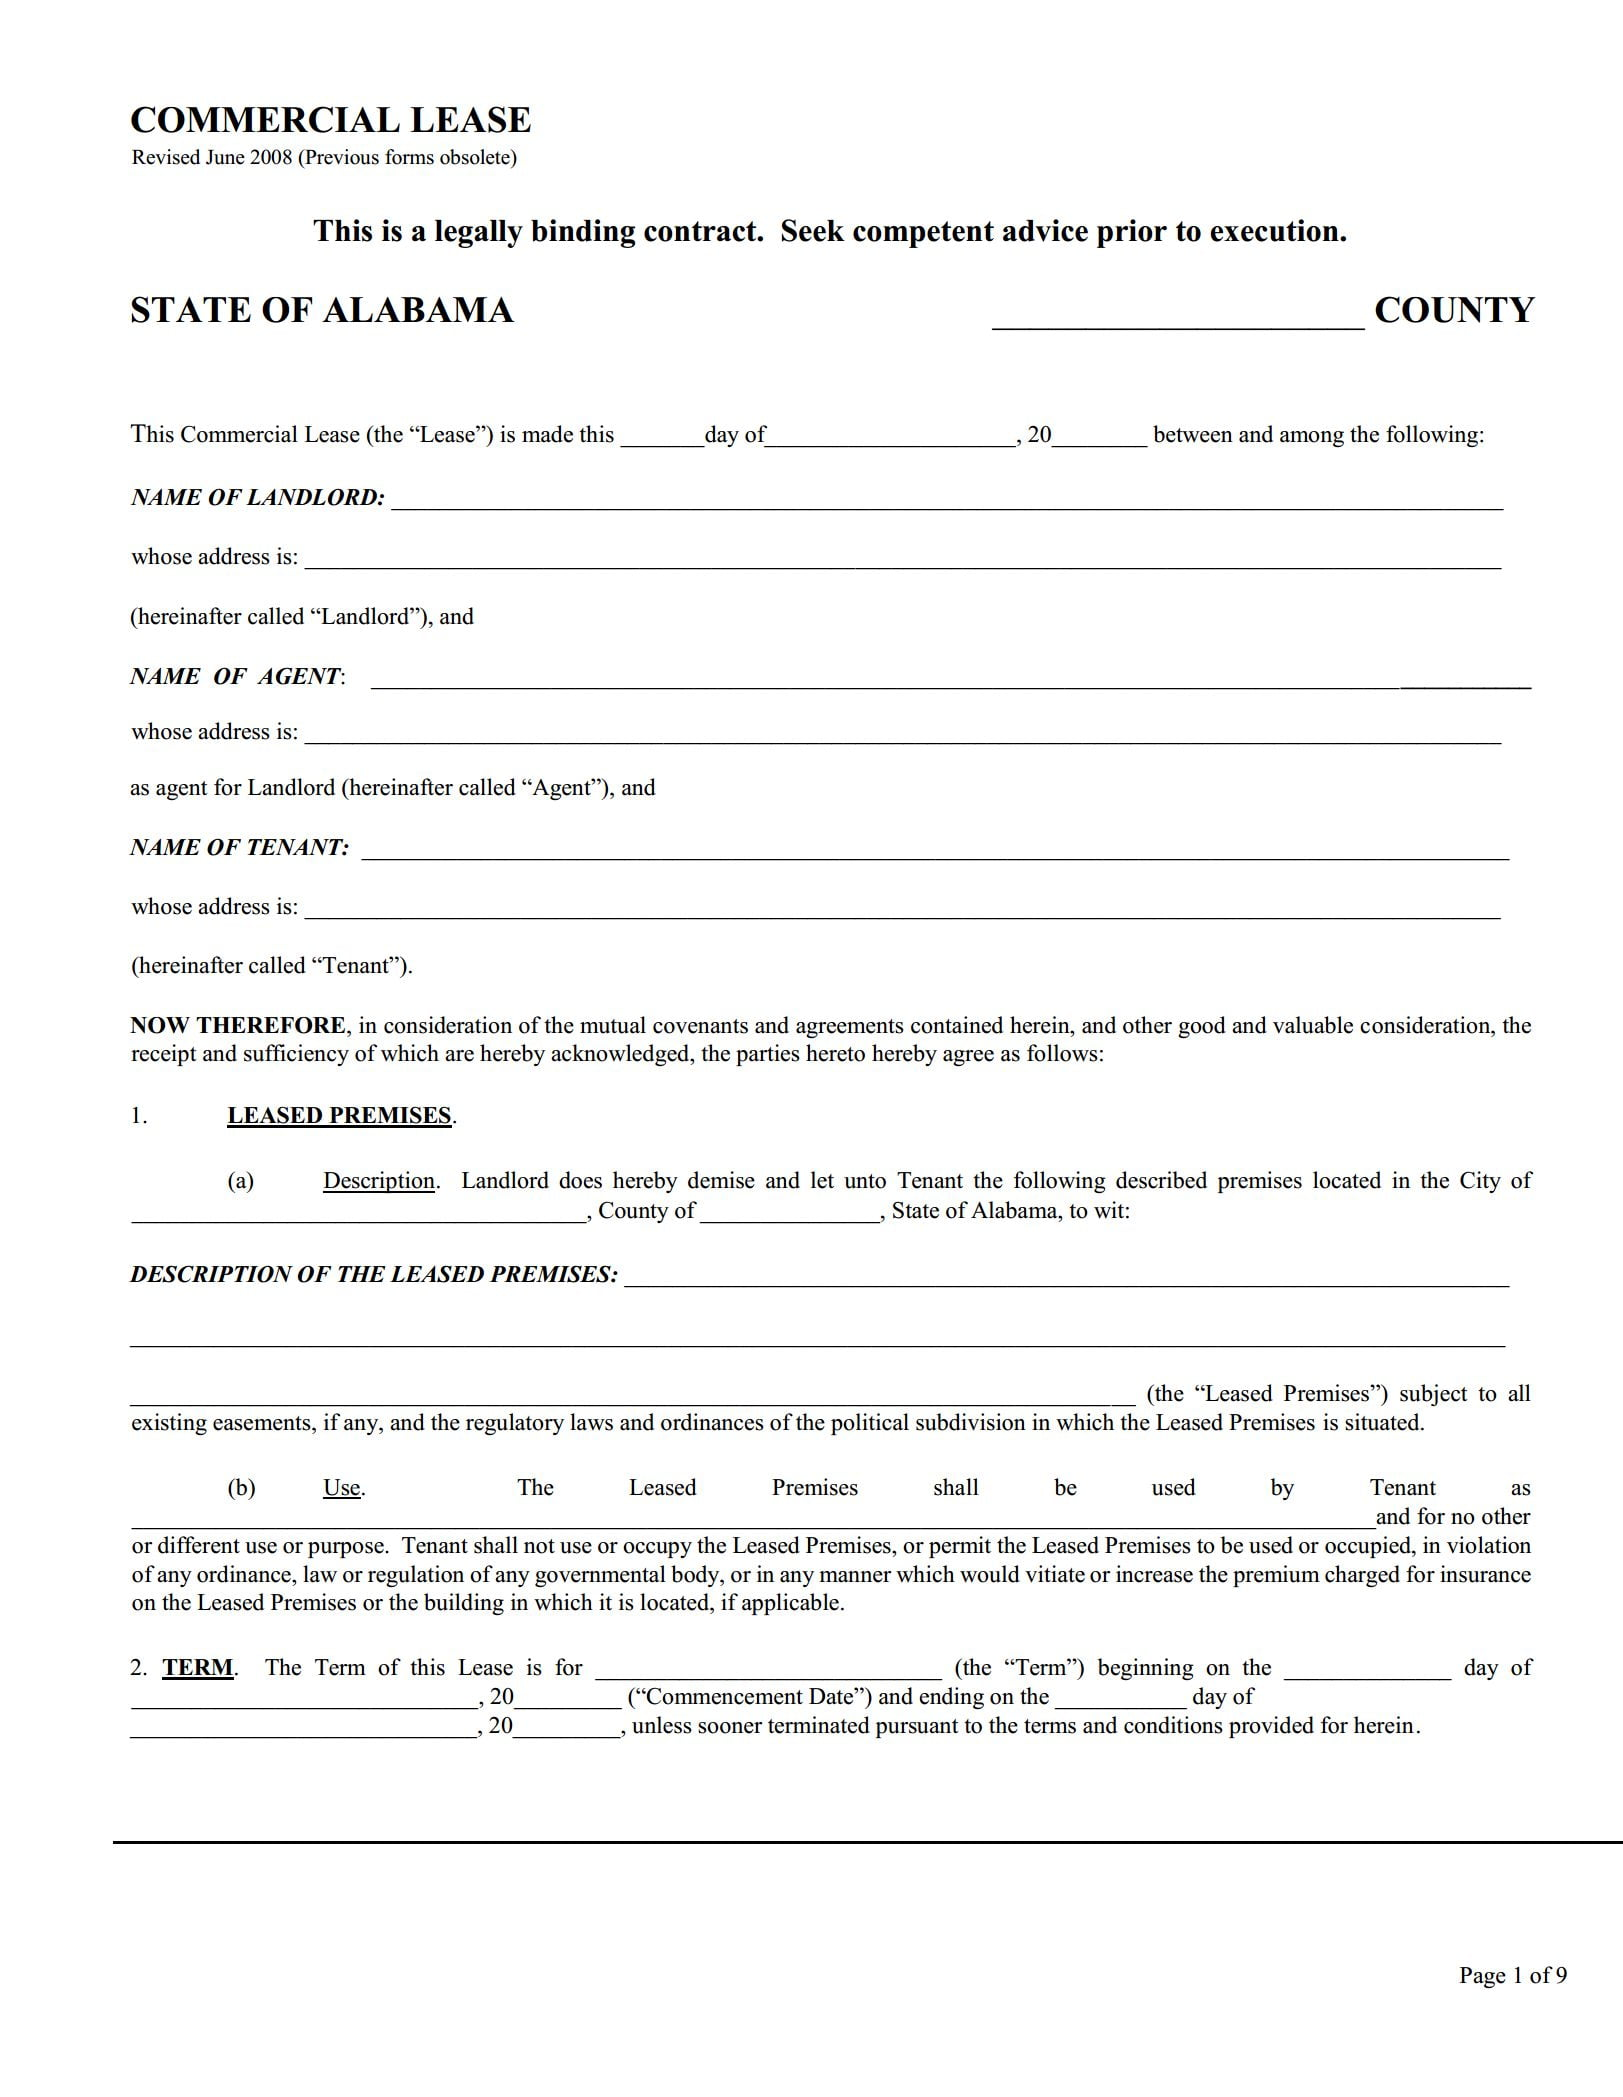 Alabama Commercial Lease Agreement